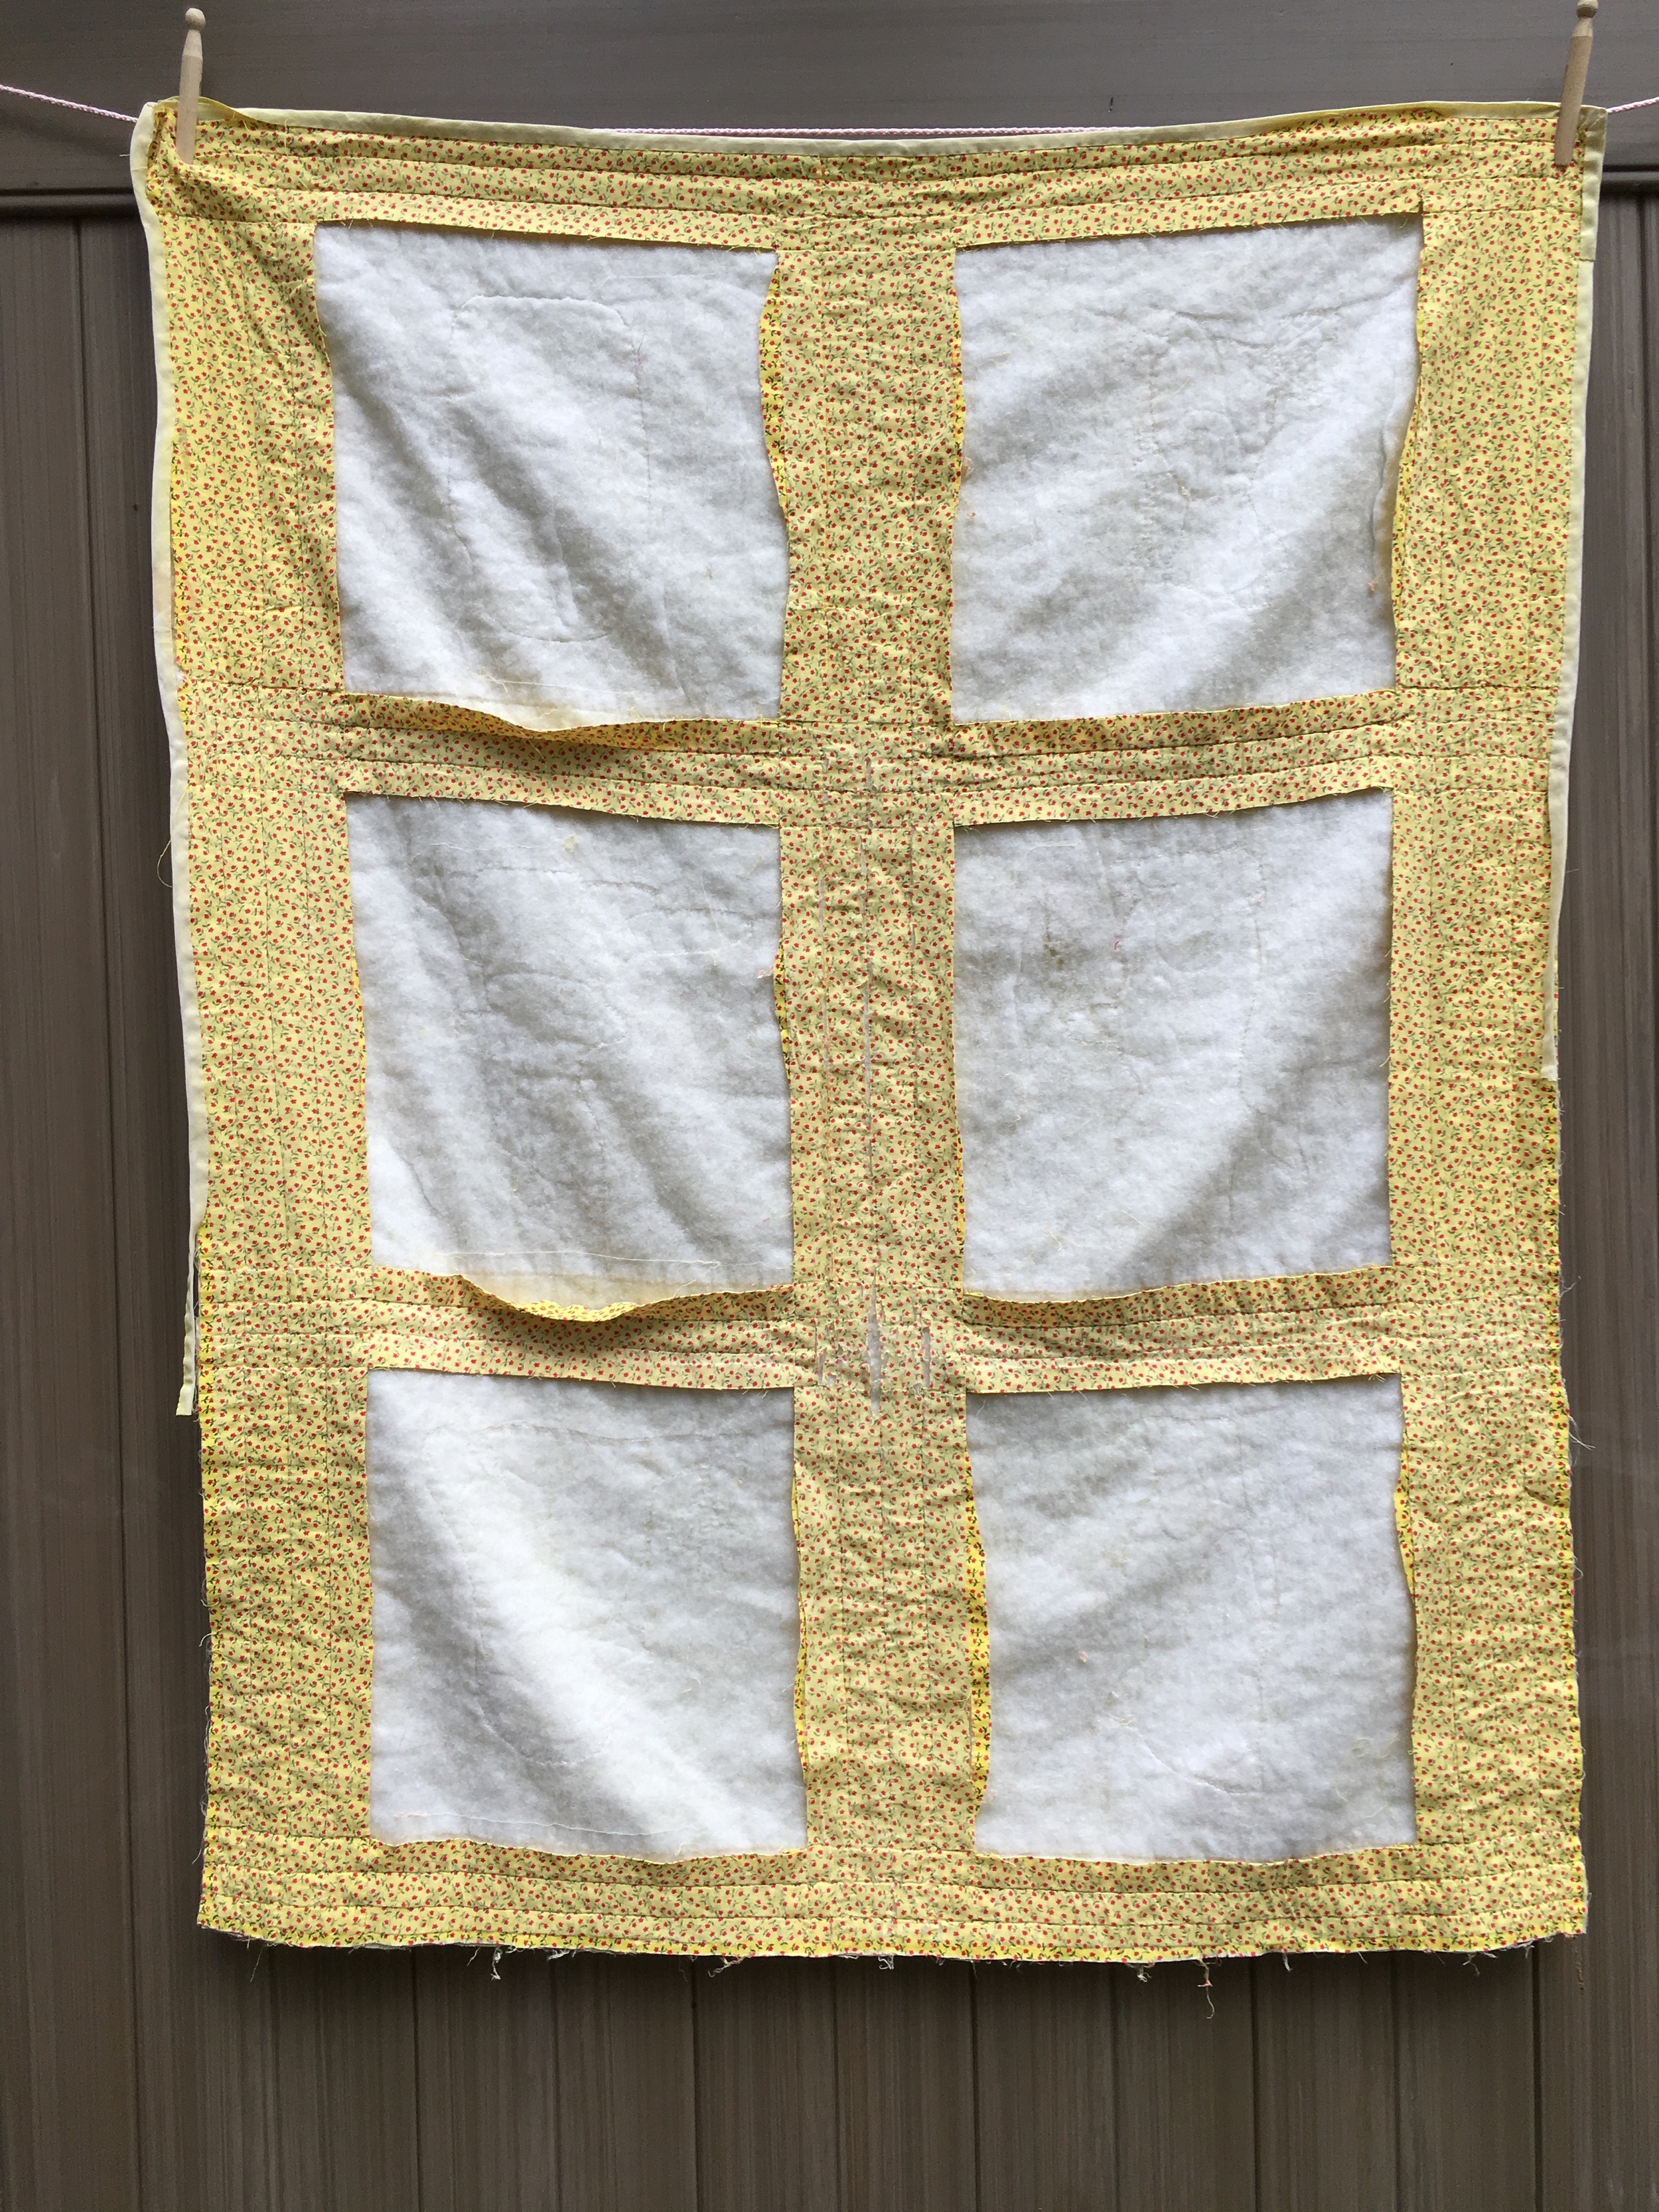 Original Quilt with the appliqued blocks removed